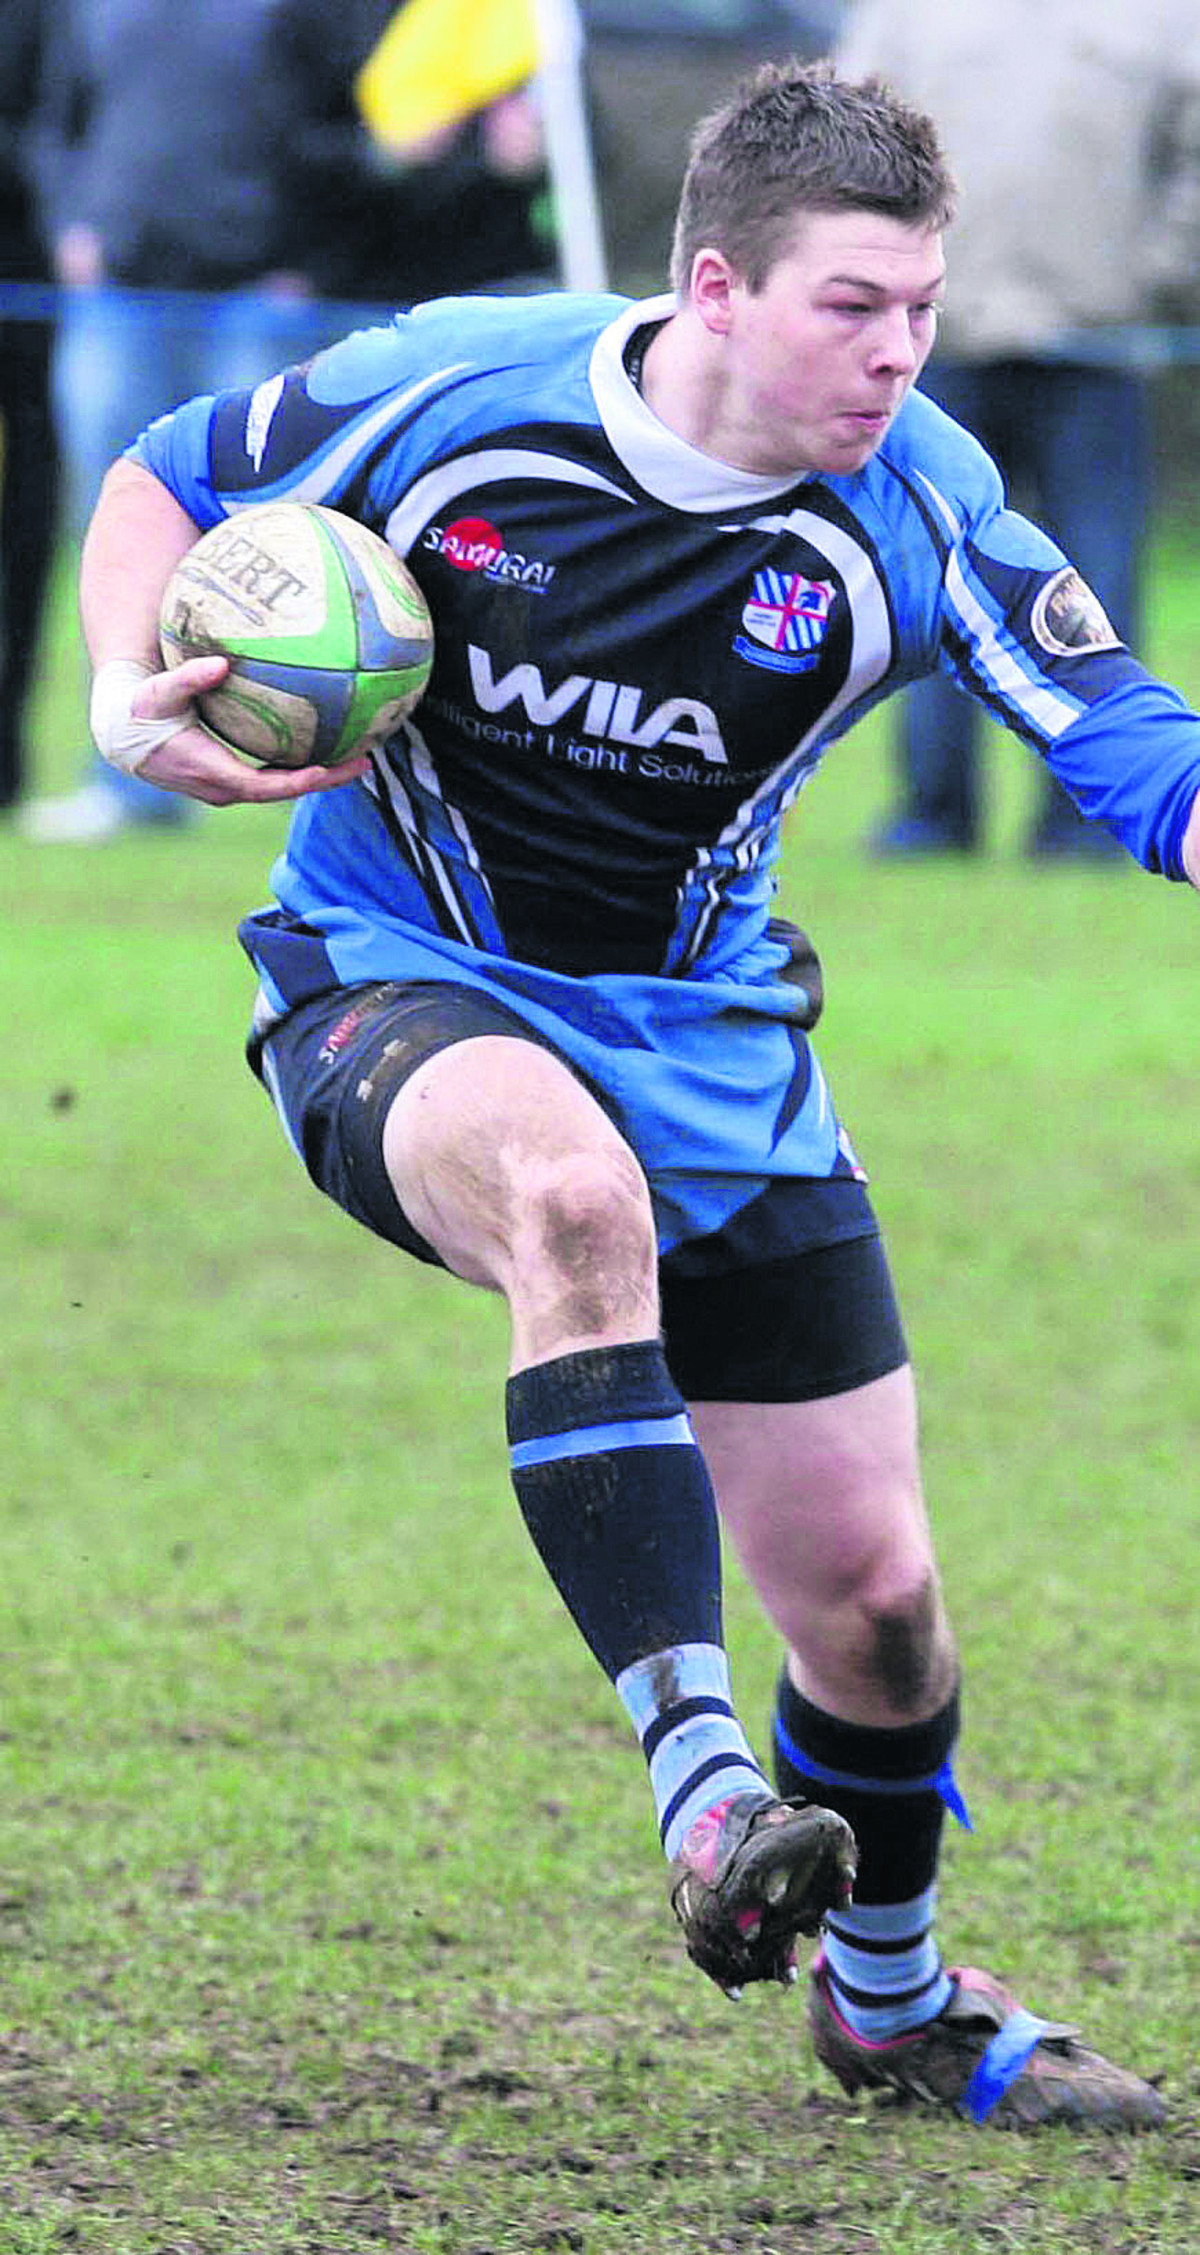 Matt Flegg scored Alchester's try in their  crucial 13-9 win against Stow-on-the-Wold on Saturday